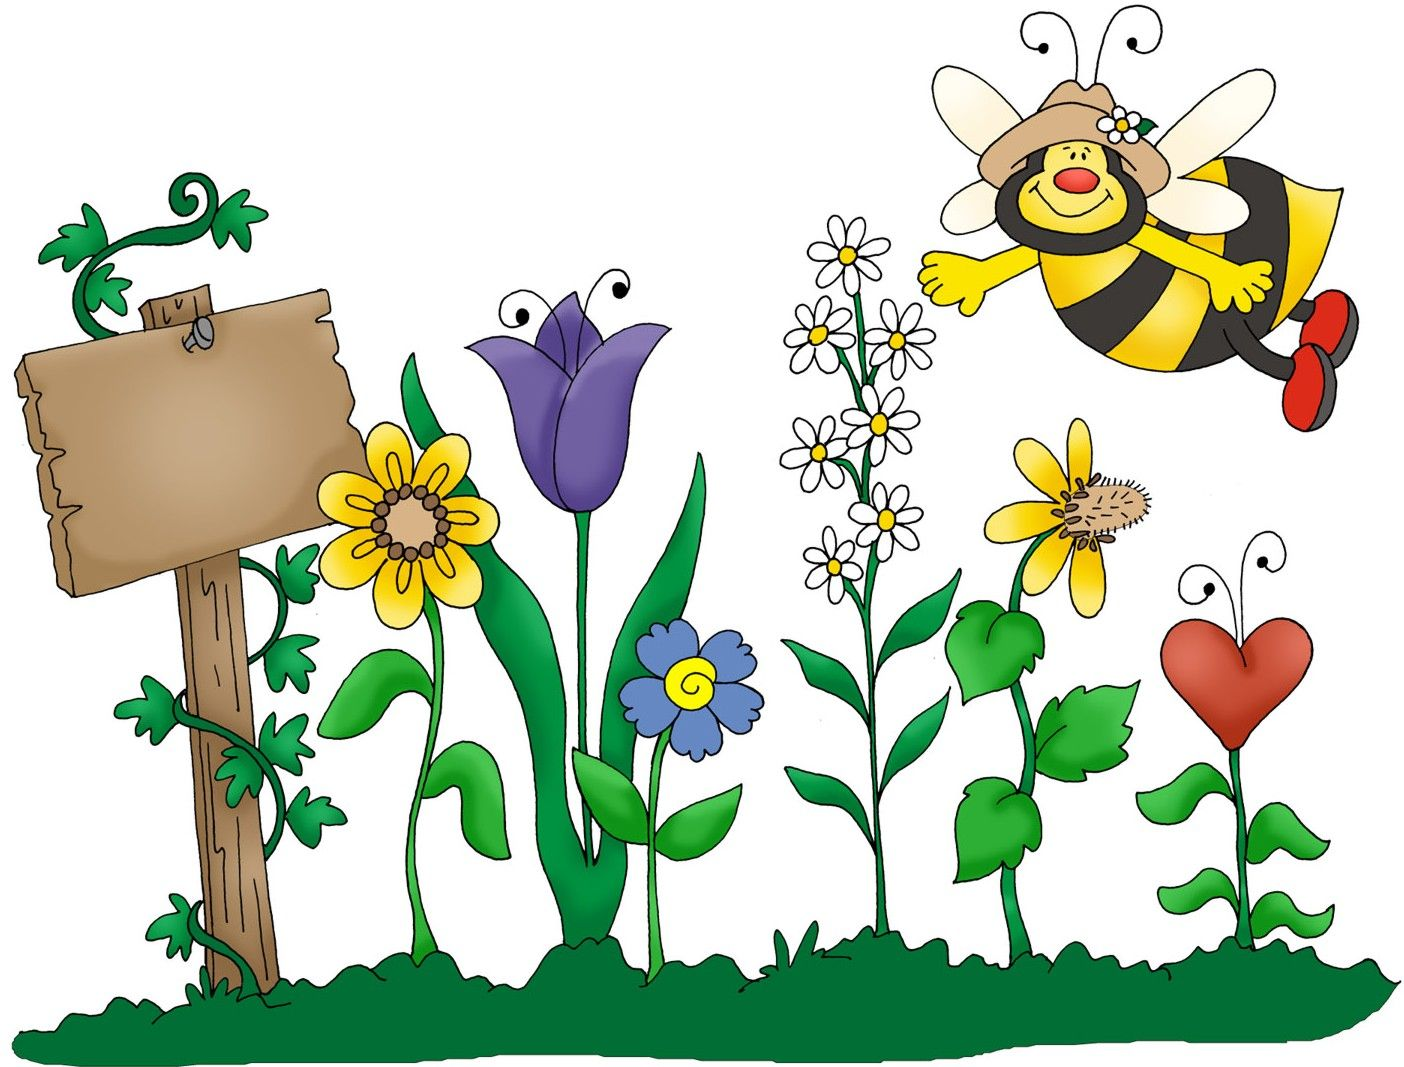 gardening clipart free clipart images clipartix garden club rh pinterest com free clipart and photos free clipart photoshop